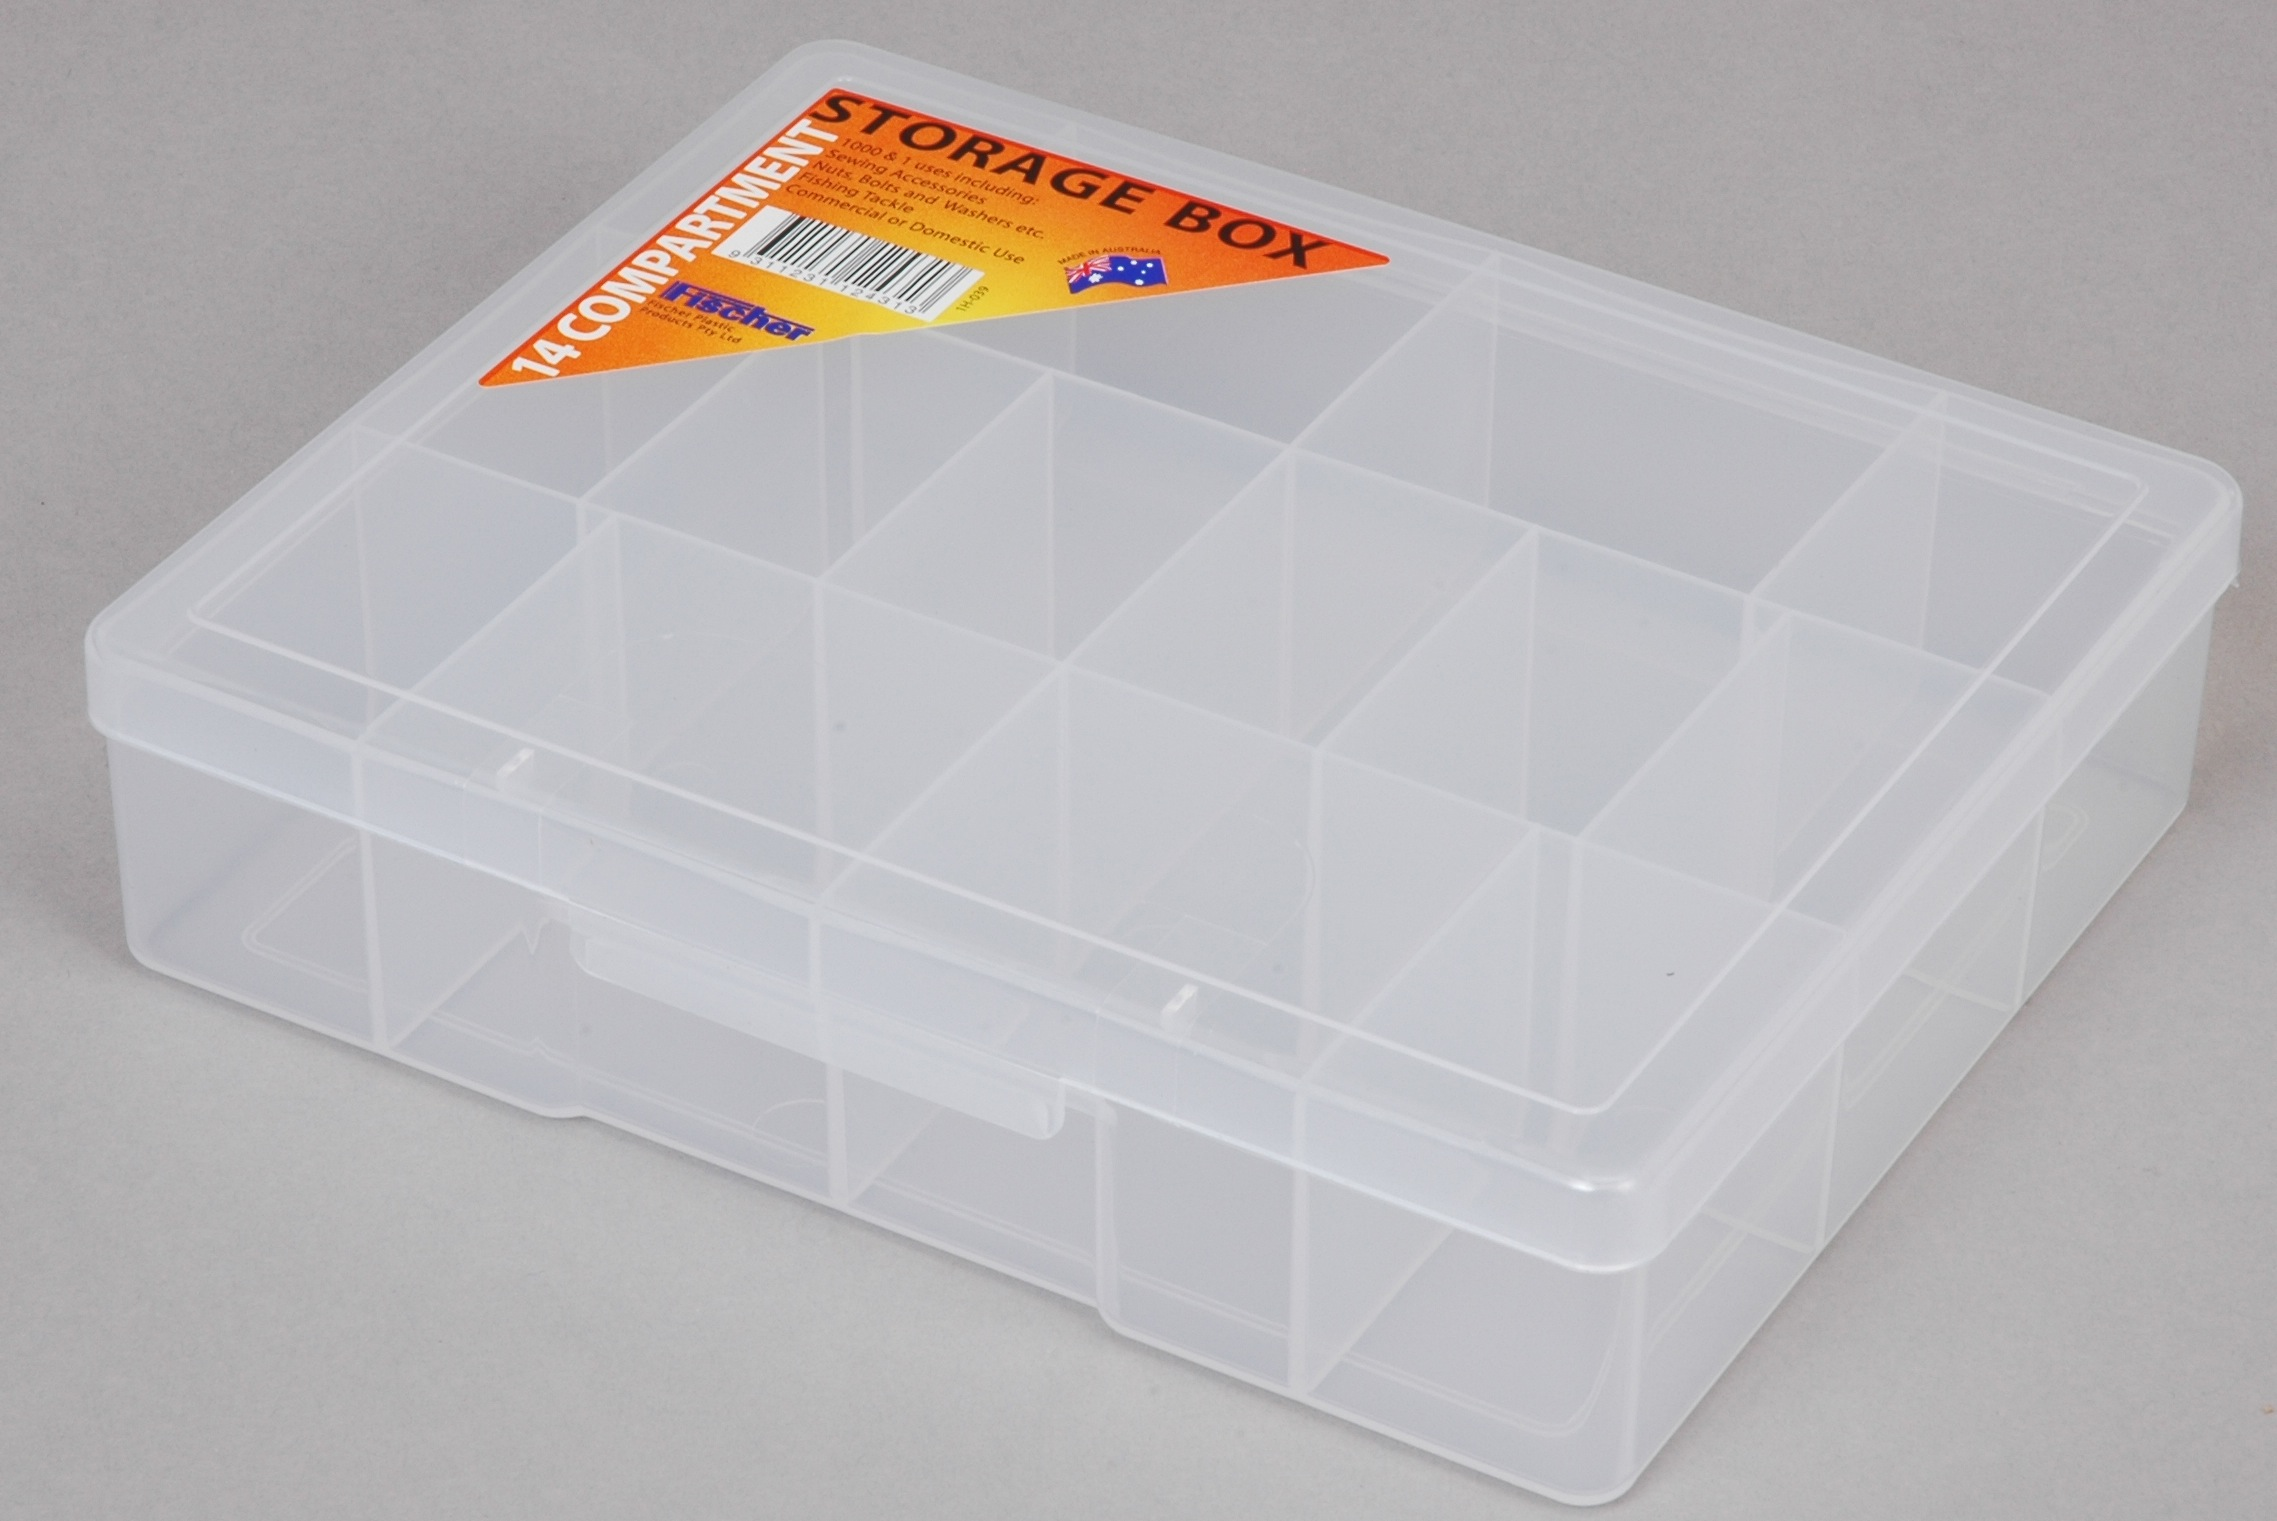 ACCESSORY BOX 14 COMP MED CLEAR (2160)